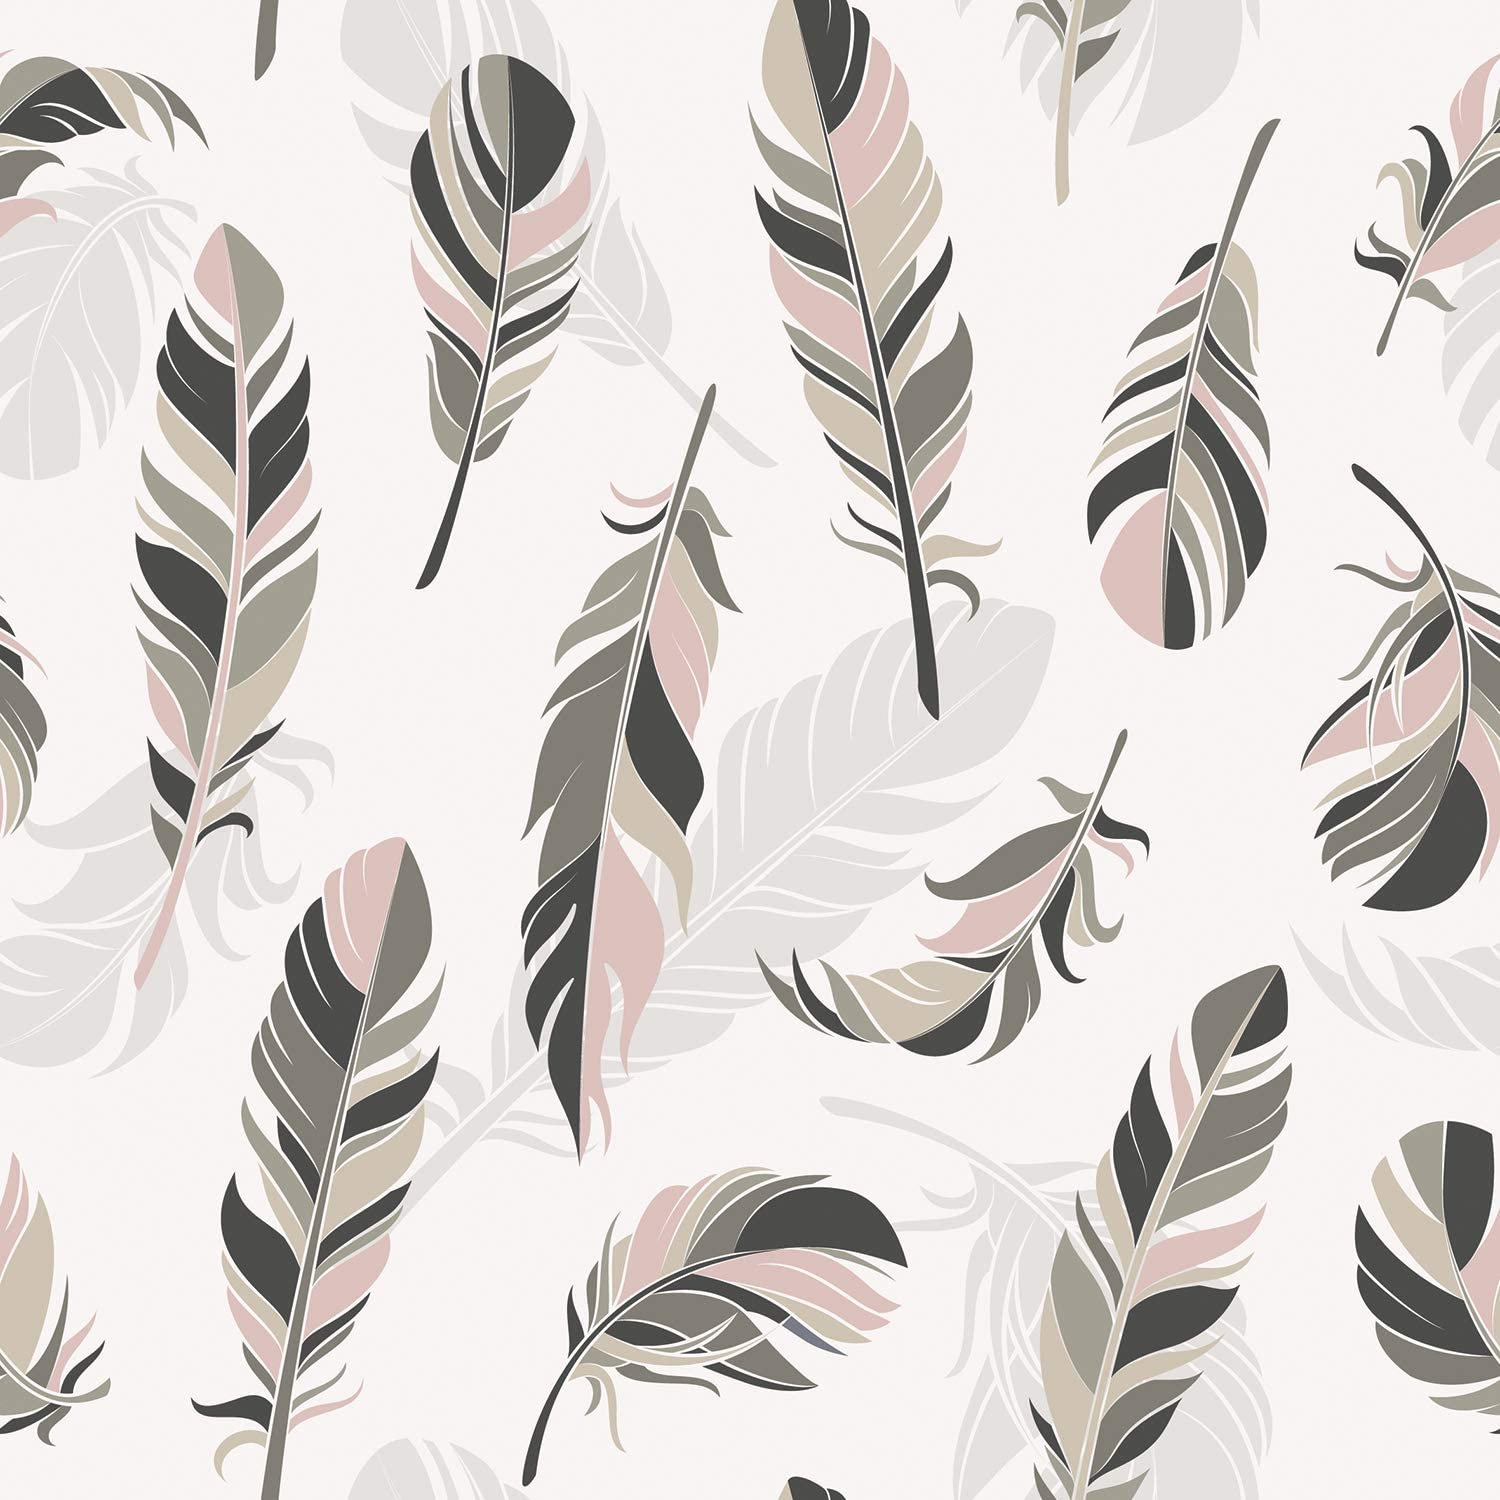 3D Color Feather A2314 Removable Wallpaper Self Adhesive Wallpaper Extra Large Peel /& Stick Wallpaper Wallpaper Mural AJ WALLPAPERS